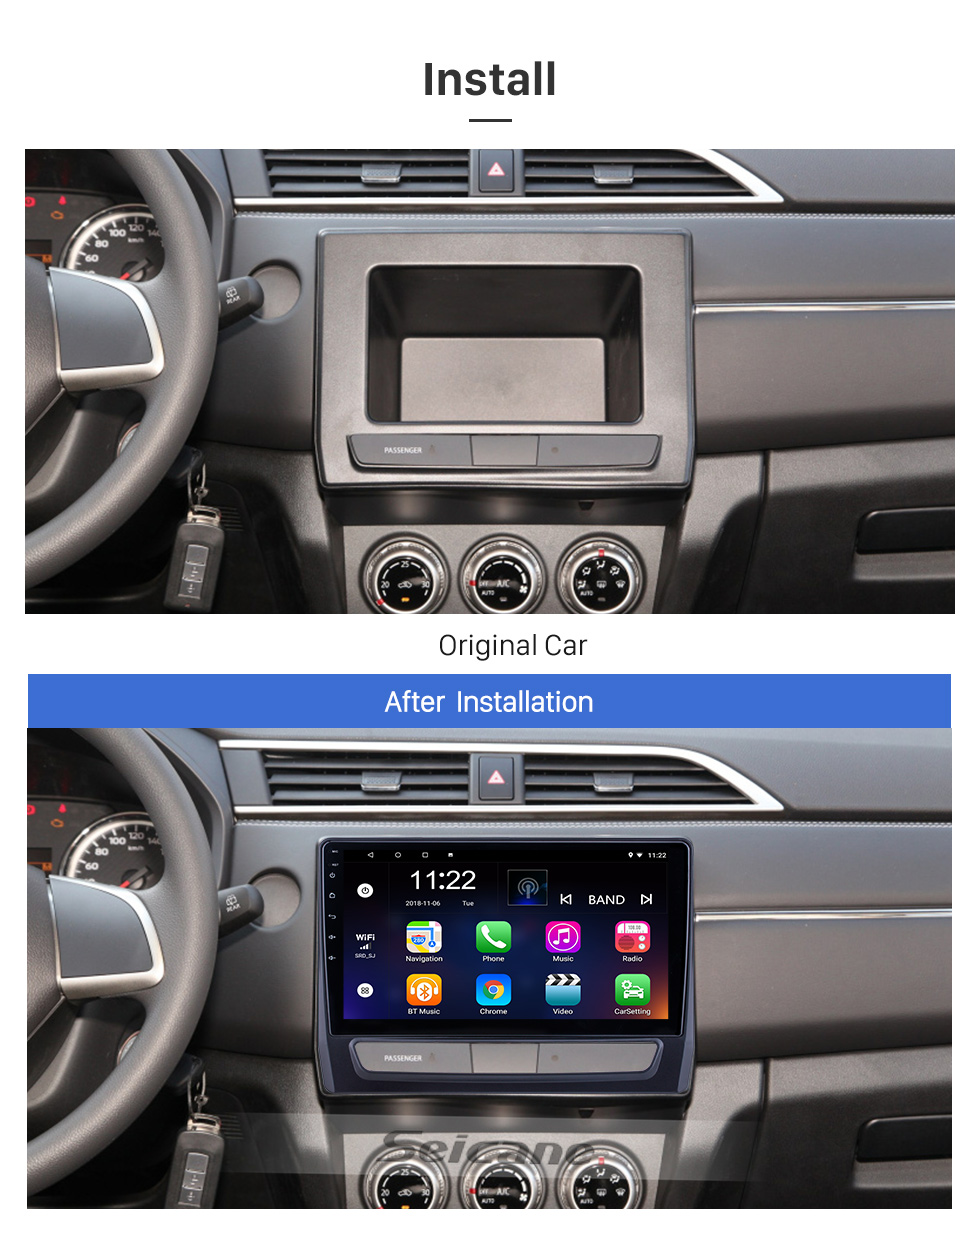 Seicane OEM 10.1 inch Android 10.0 for 2020 Mitsubishi ASX Radio Bluetooth HD Touchscreen GPS Navigation System support Carplay TPMS